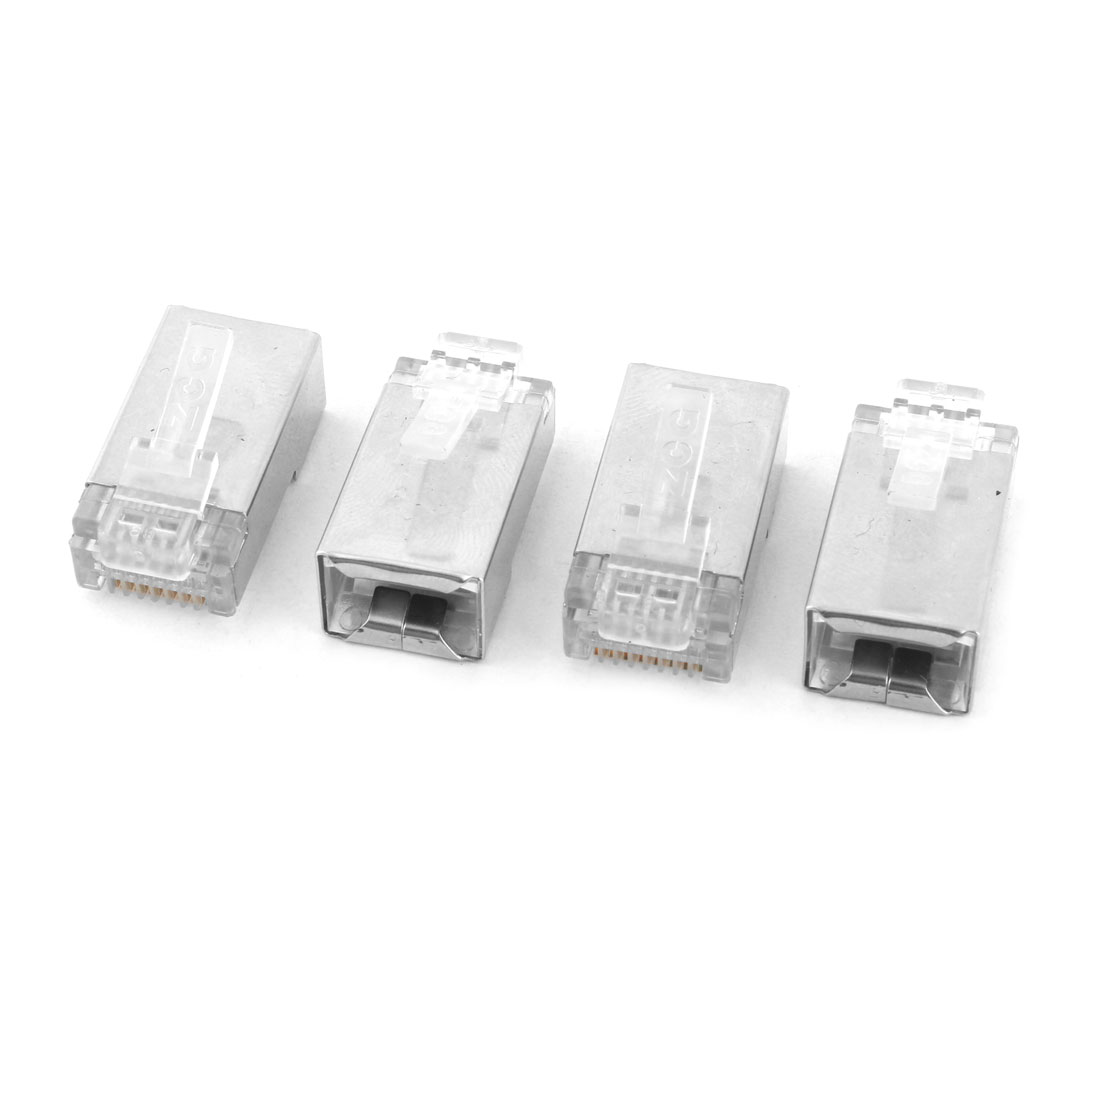 Ethernet Network Lan Cord Modular Connector Cable Head Silver Tone 4pcs